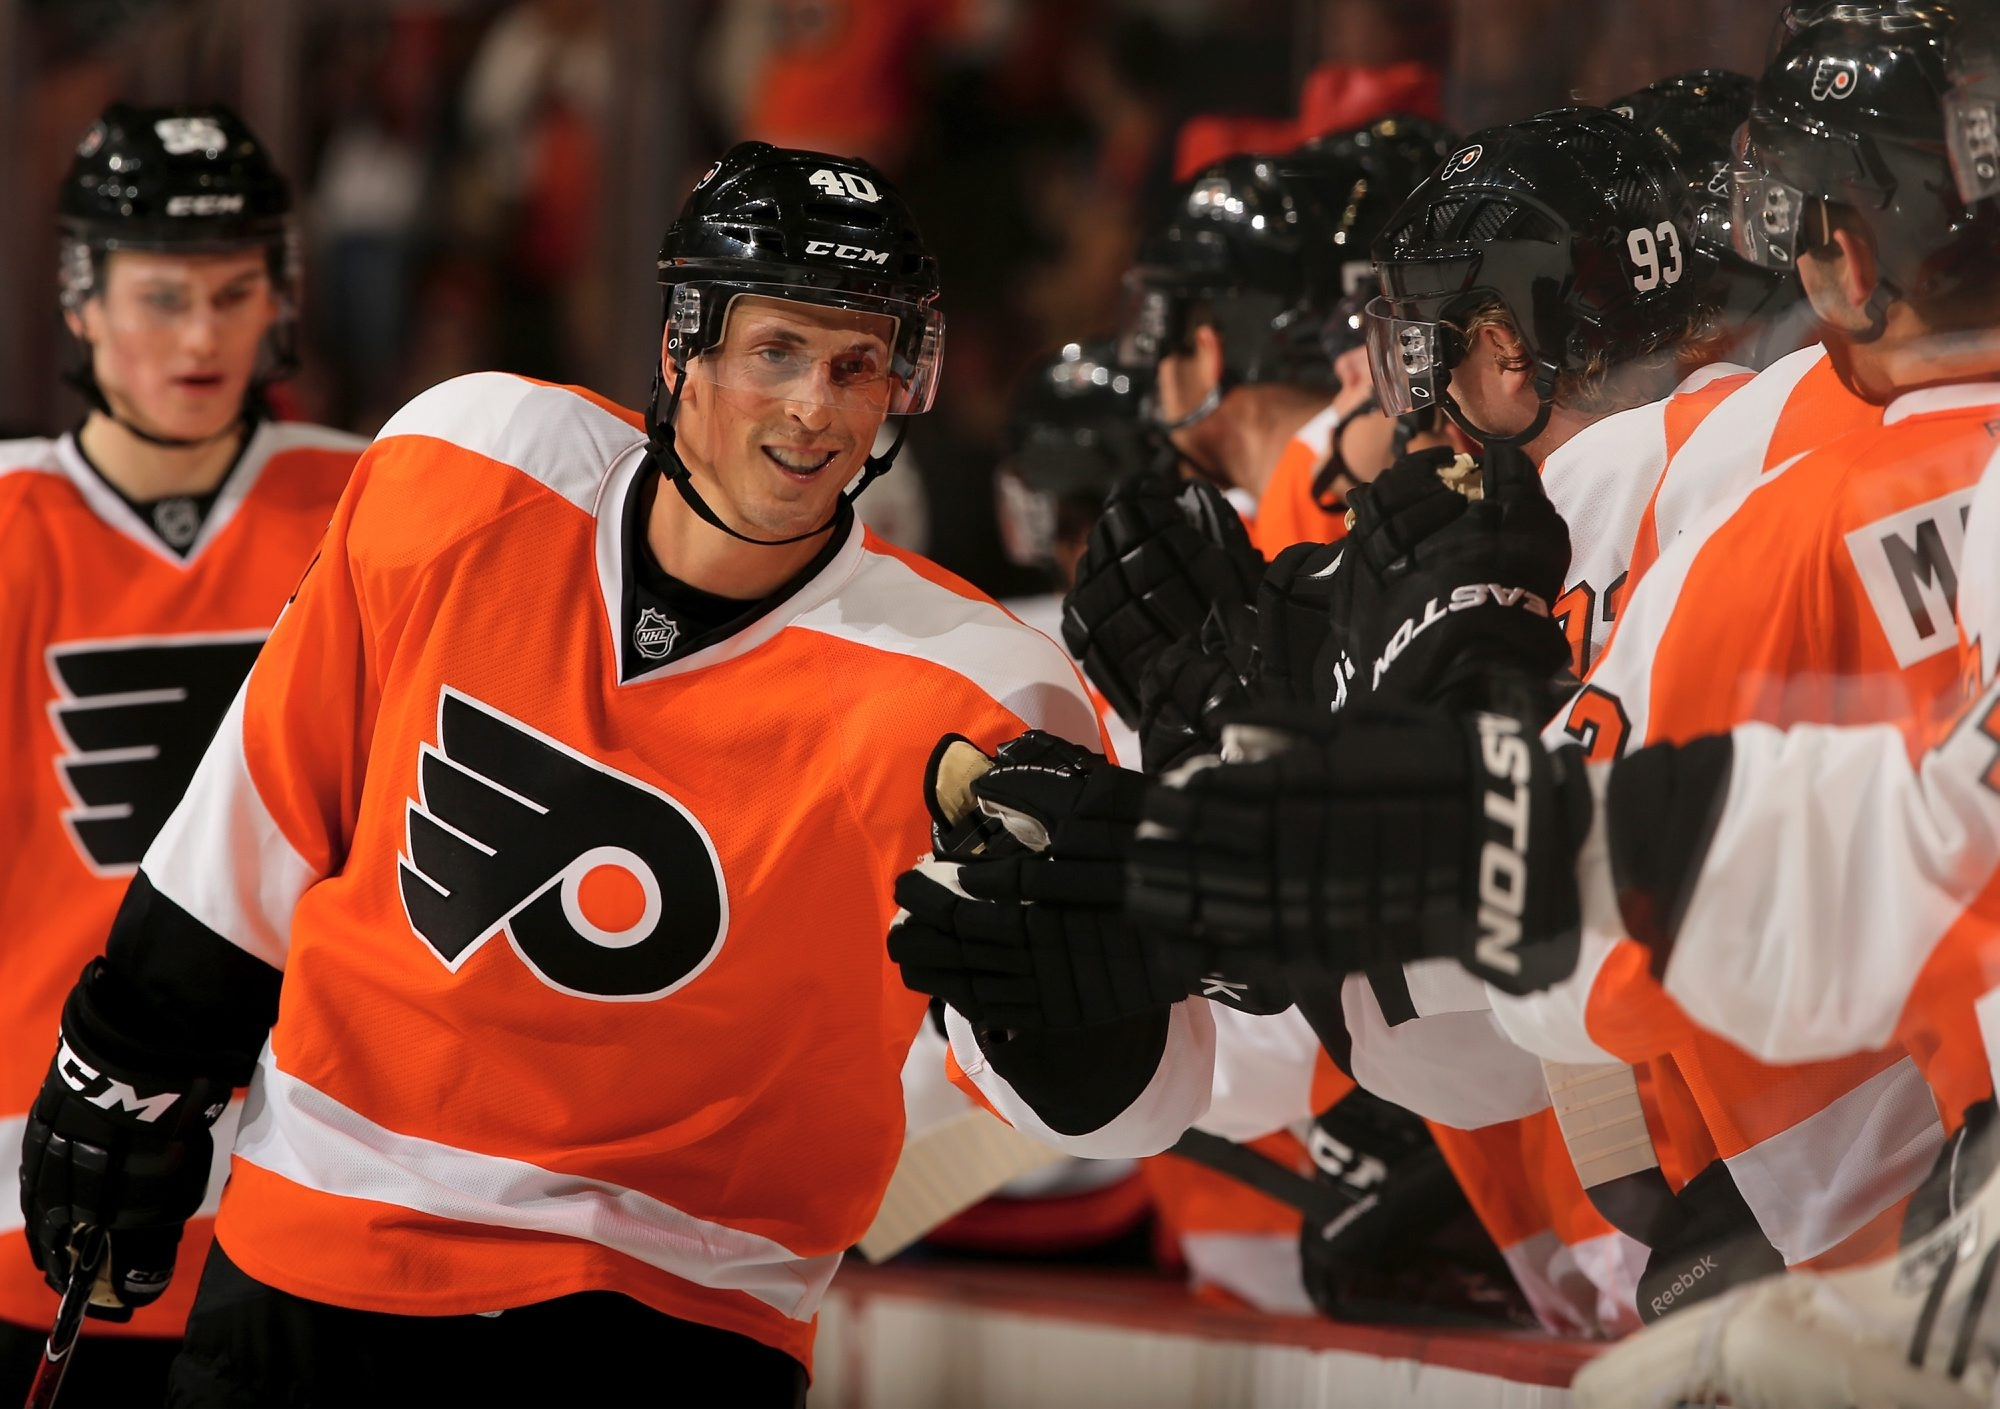 The addition of Vincent Lecavalier gives the Philadelphia Flyers four very good centers, as Philly is more about talent than toughness these days.